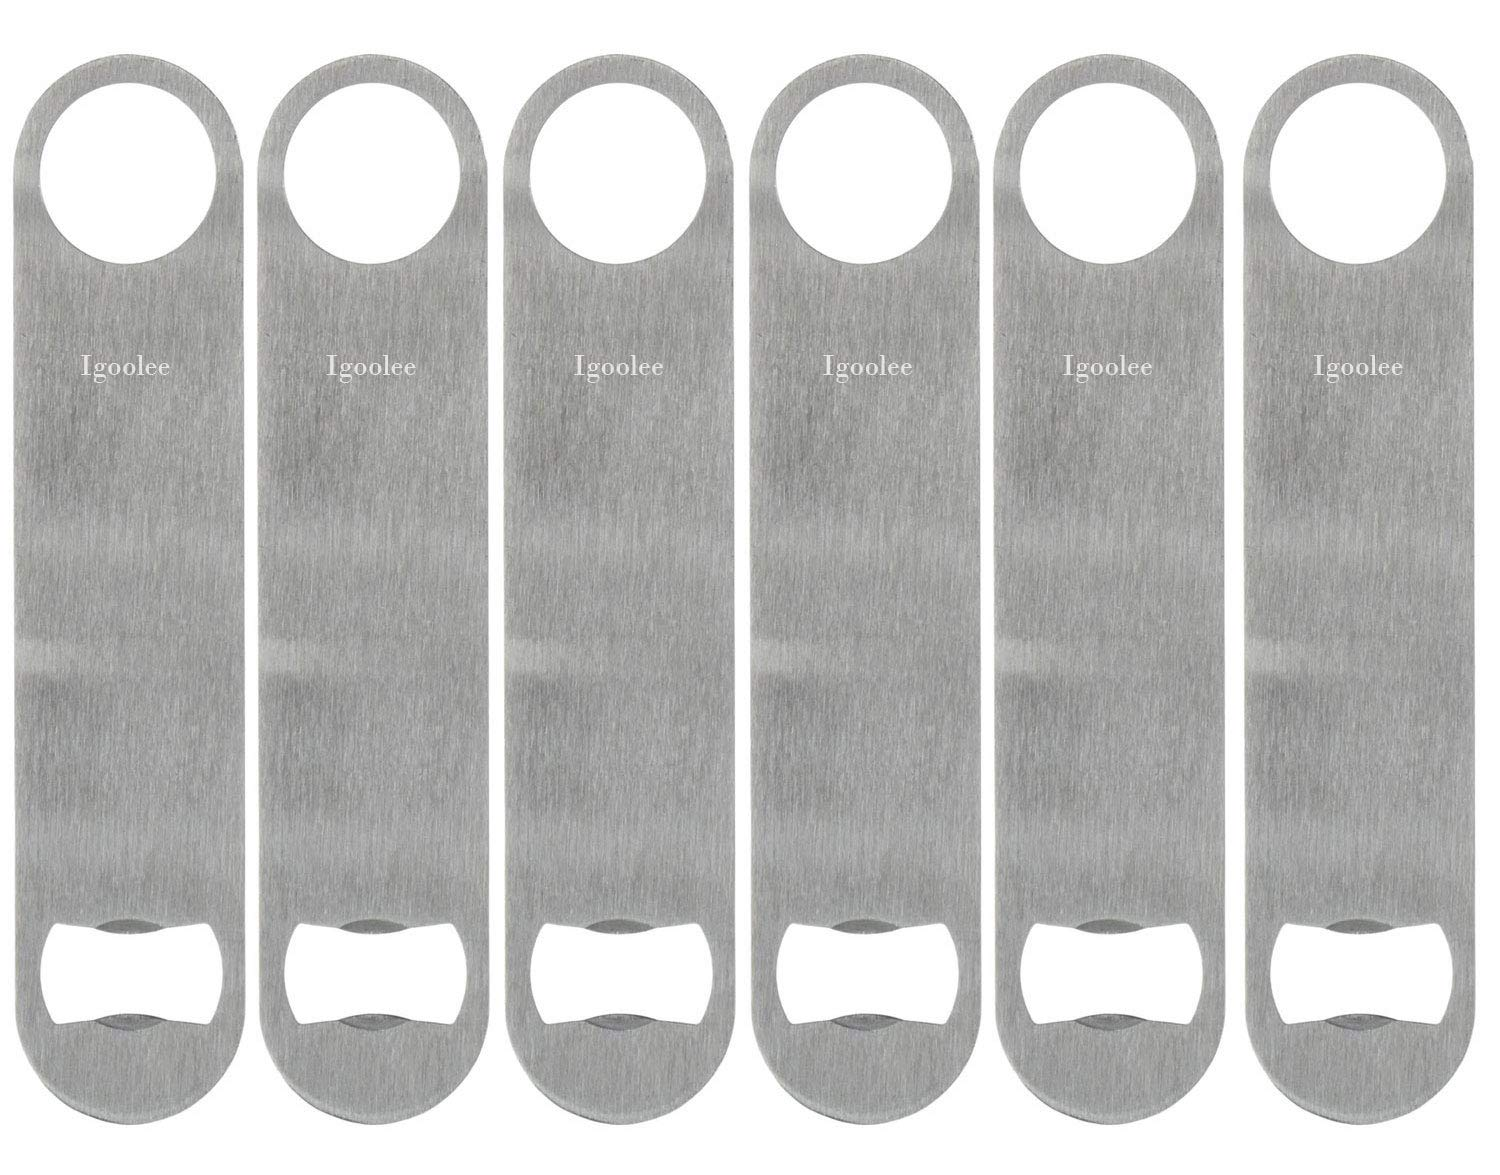 Igoolee Heavy Duty Stainless Steel Flat Bottle Opener, 6 Pack Beer Bottle Opener for Kitchen, Bar or Restaurant